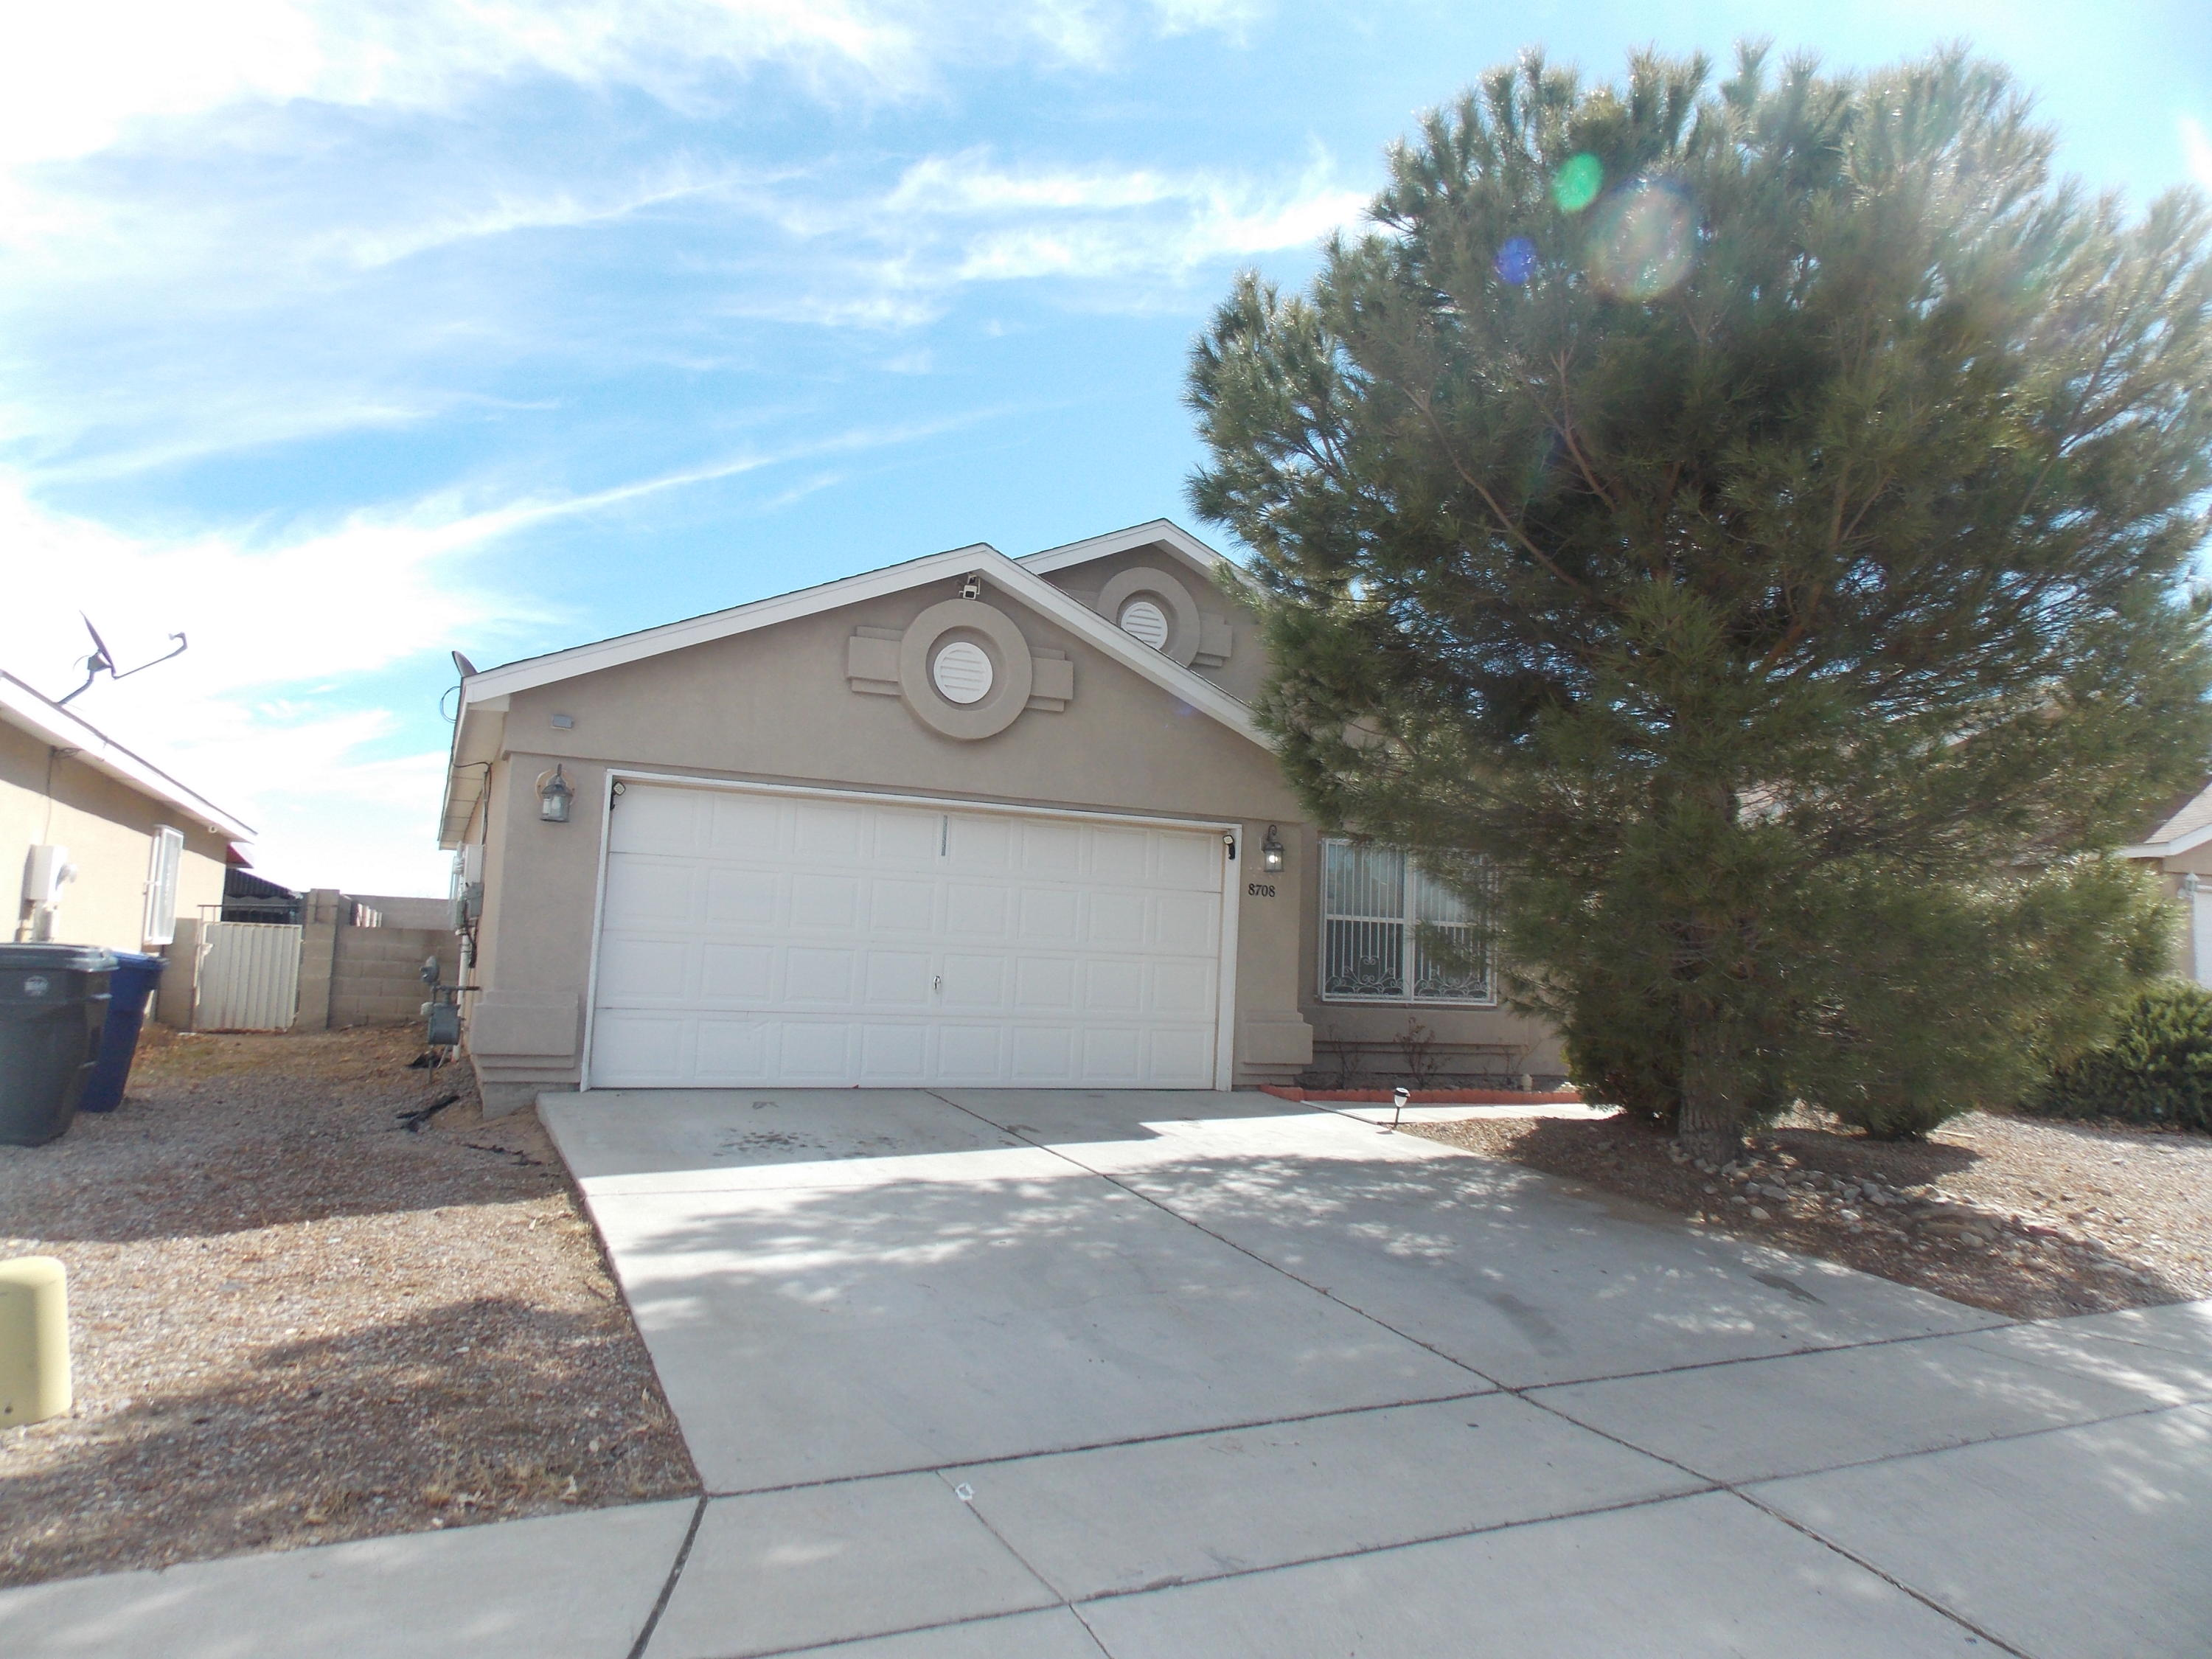 Move in ready home, 3 bedrooms, 2 baths home with  good size rooms, Open floor plan,Laminate wood flooring. Refrigerated air. living room is inviting with vaulted ceilings, Master bedroom has walking closet. Good  size backyard. .